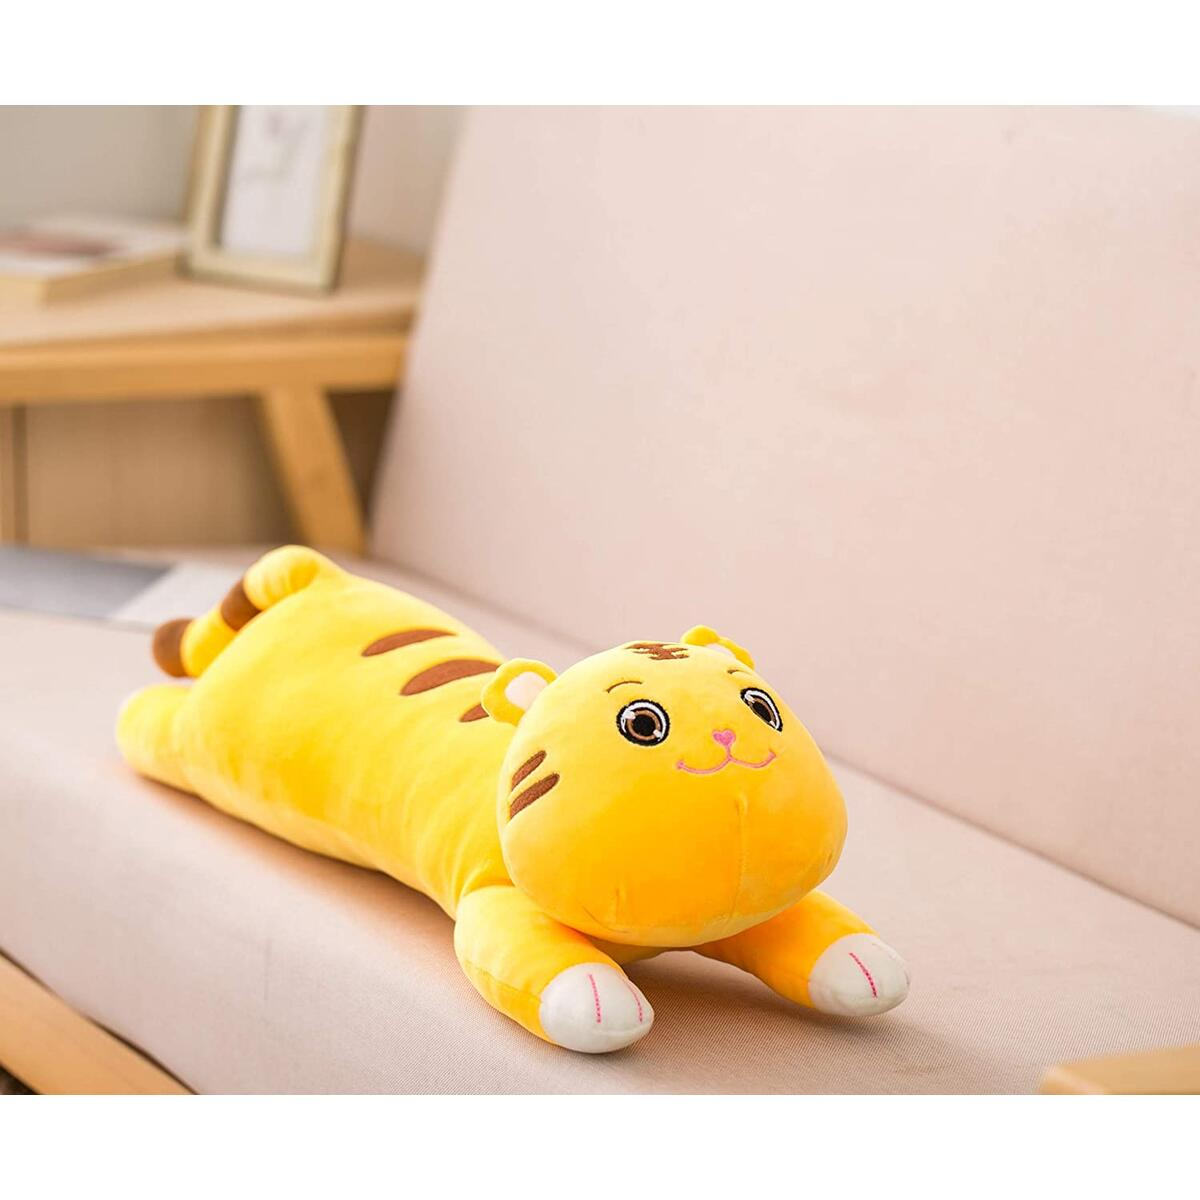 TorrisToys 25 Inches Stuffed Tiger Plush Toy - Perfect Cute Big Stuffed Animals Tiger for Kids